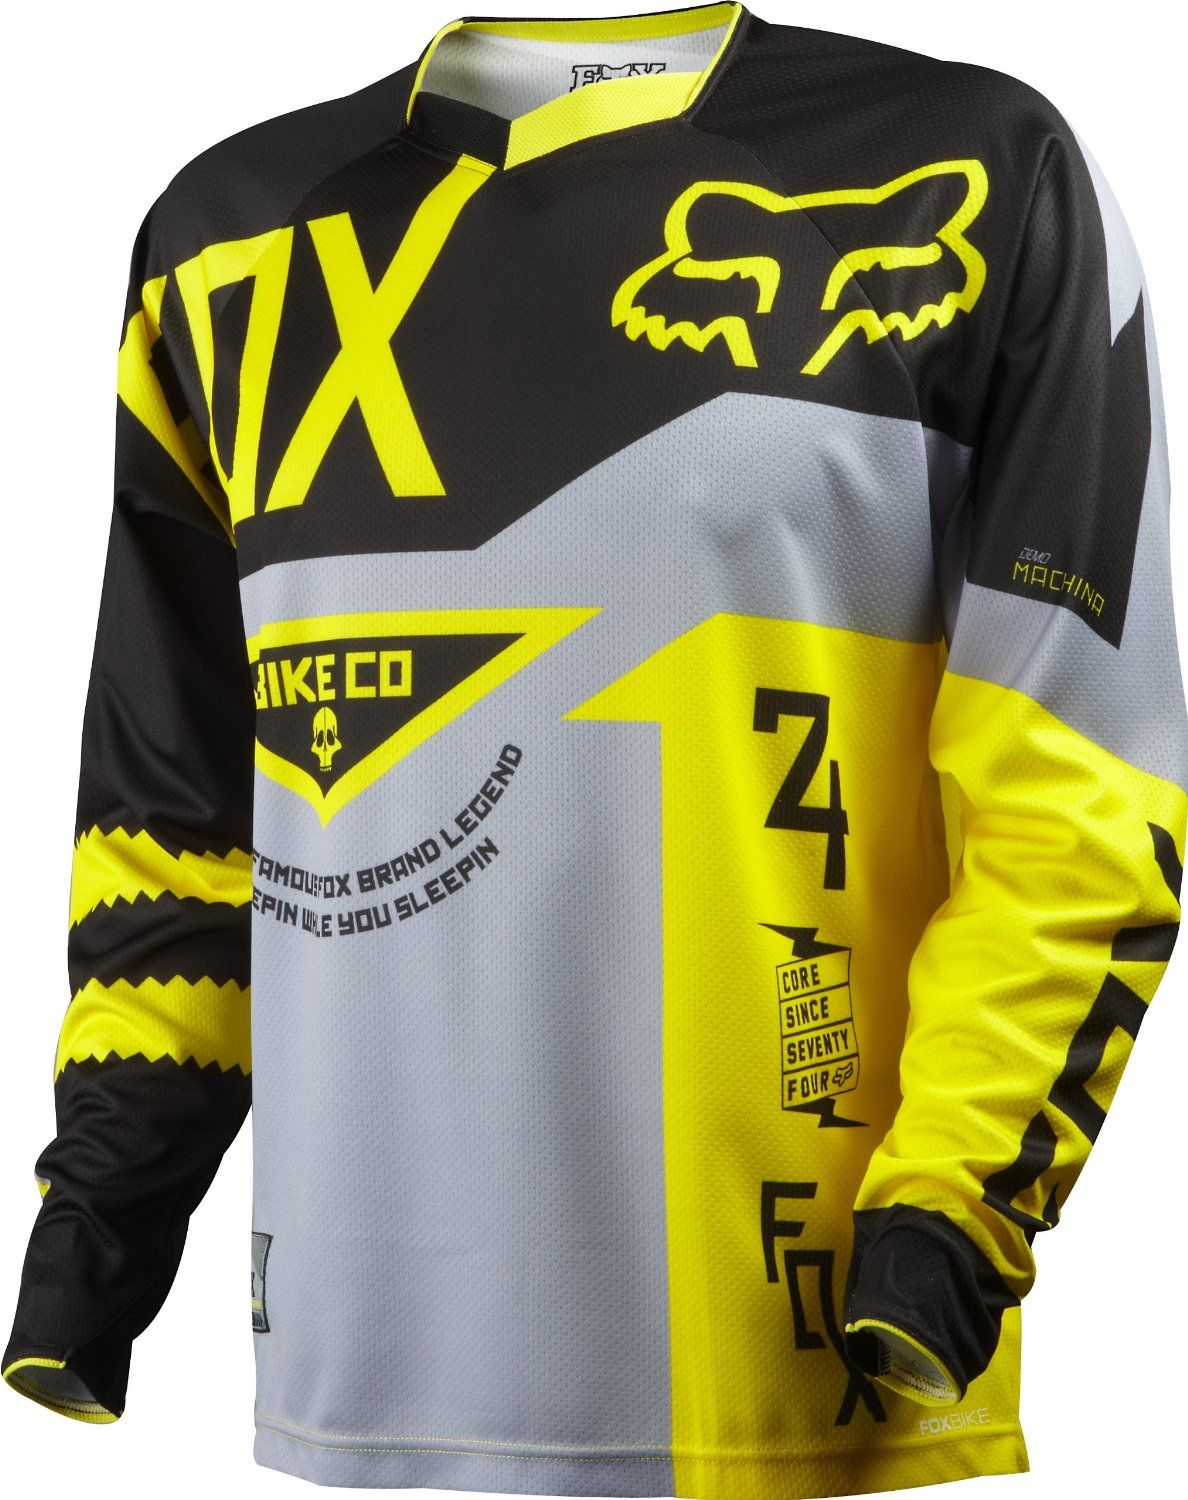 Fox Head Men's Demo Long Sleeve Jersey: http://downhill.cybermarket24.com/fox-head-mens-demo-long-sleeve-jersey-blackwhite/